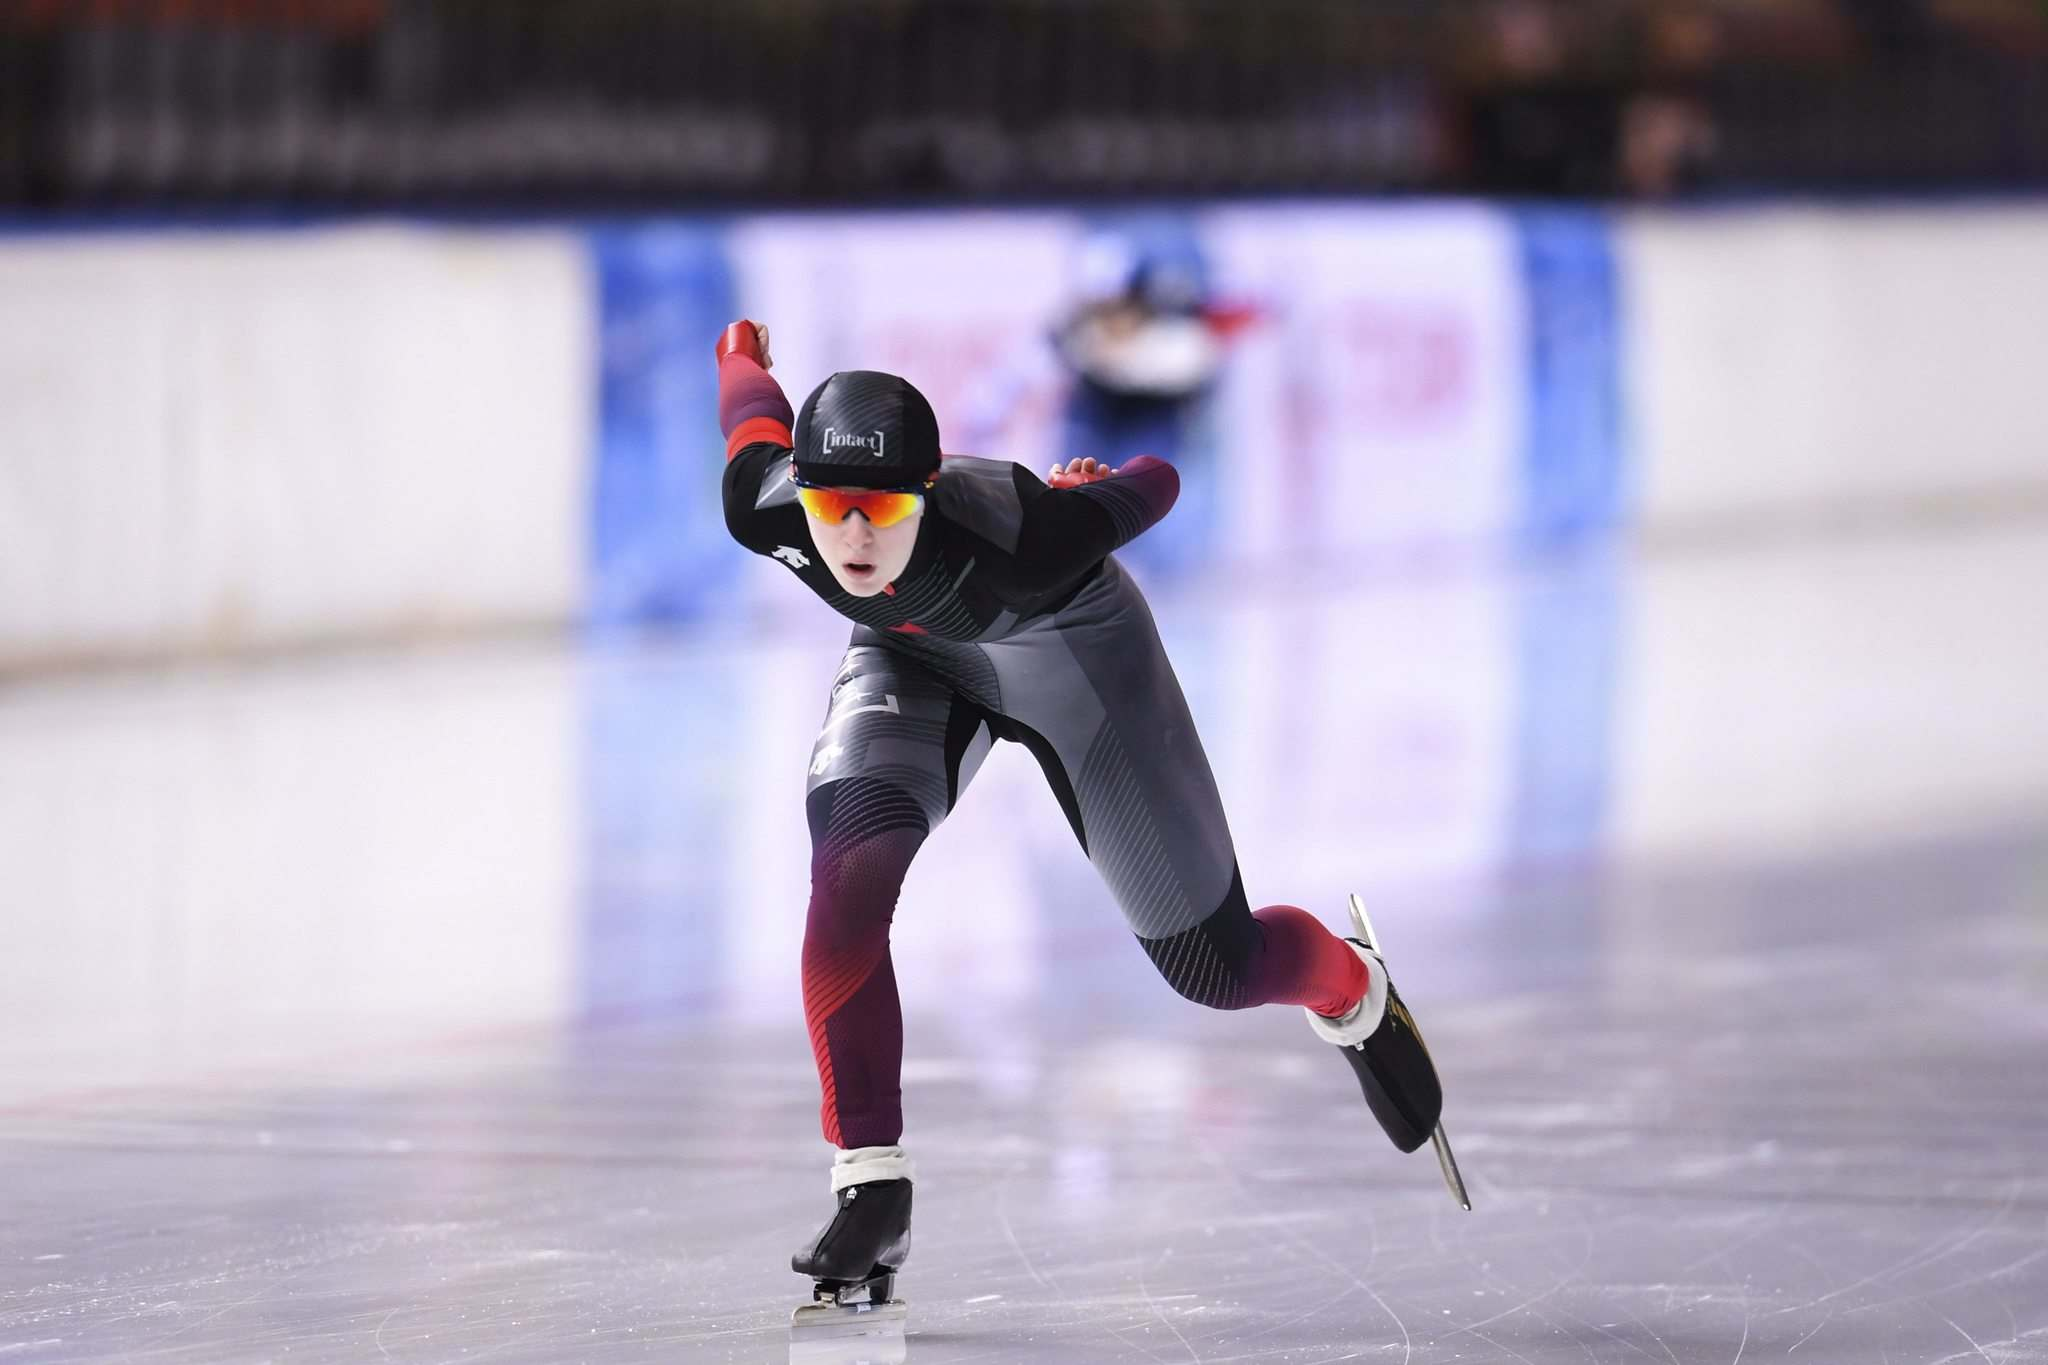 Oliver Hardt / Getty Images</p> Scott competing in the Ladies 1,500 meter race during the ISU Junior World Cup Speed Skating Final at Minsk Arena on February 16 in Minsk, Belarus.</p>